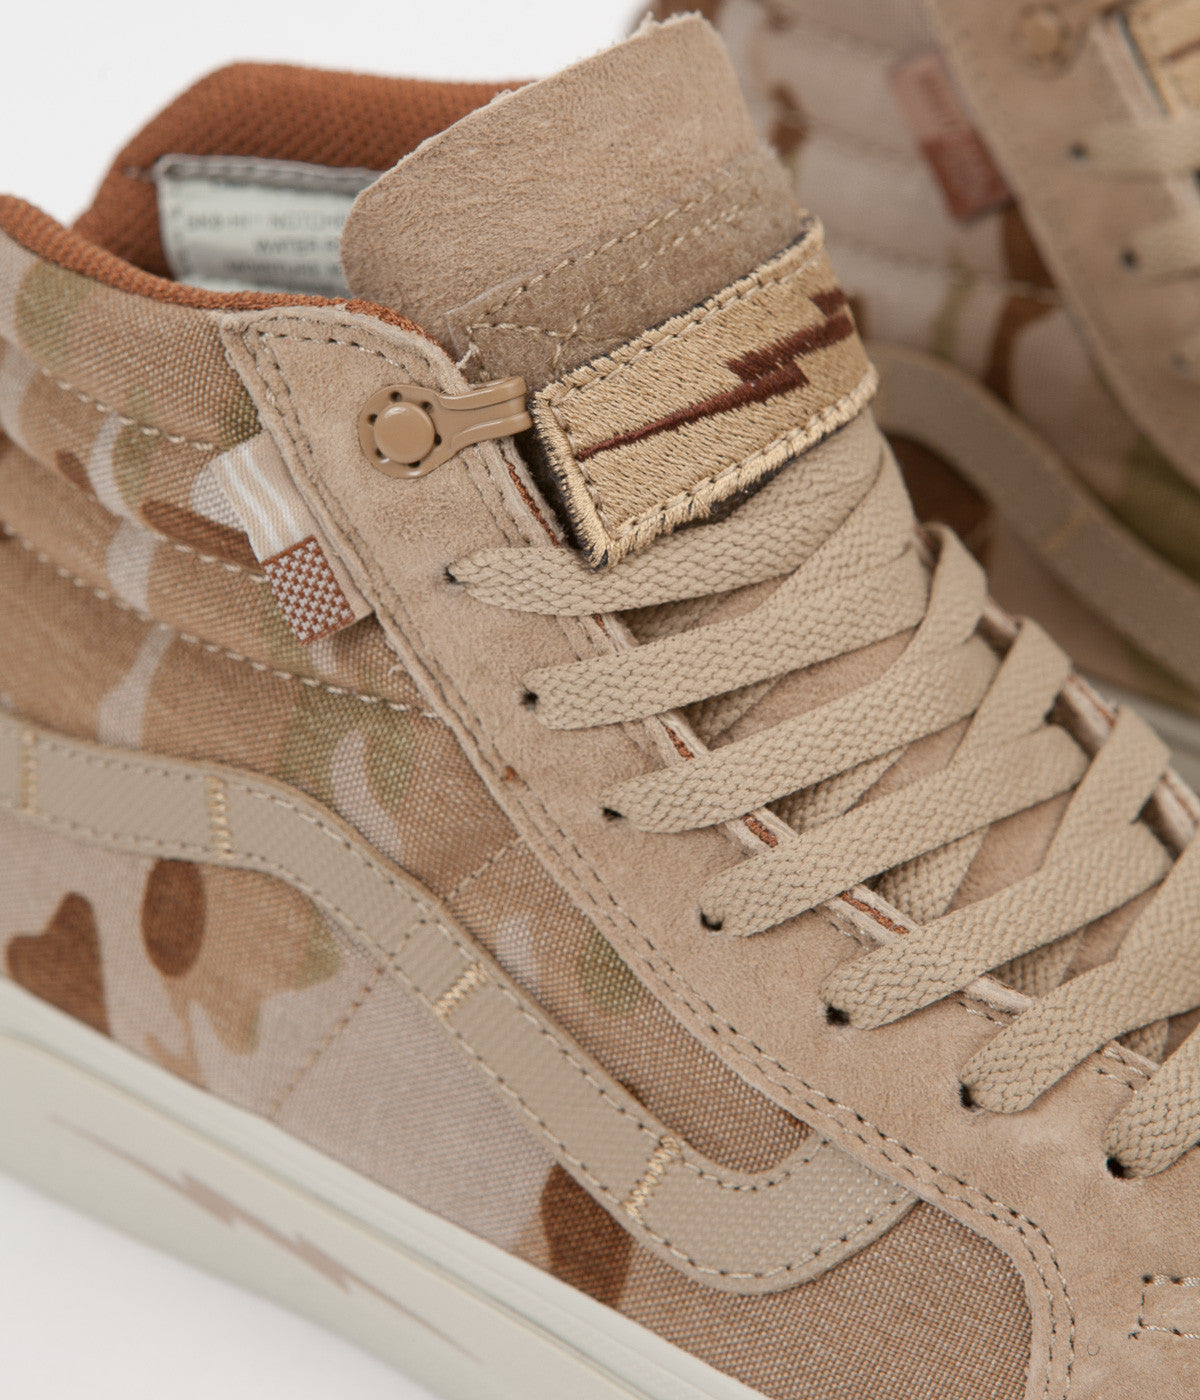 b7b67fd224 ... Vans Sk8-Hi Notchback (Defcon) Shoes - Arid MultiCam ...